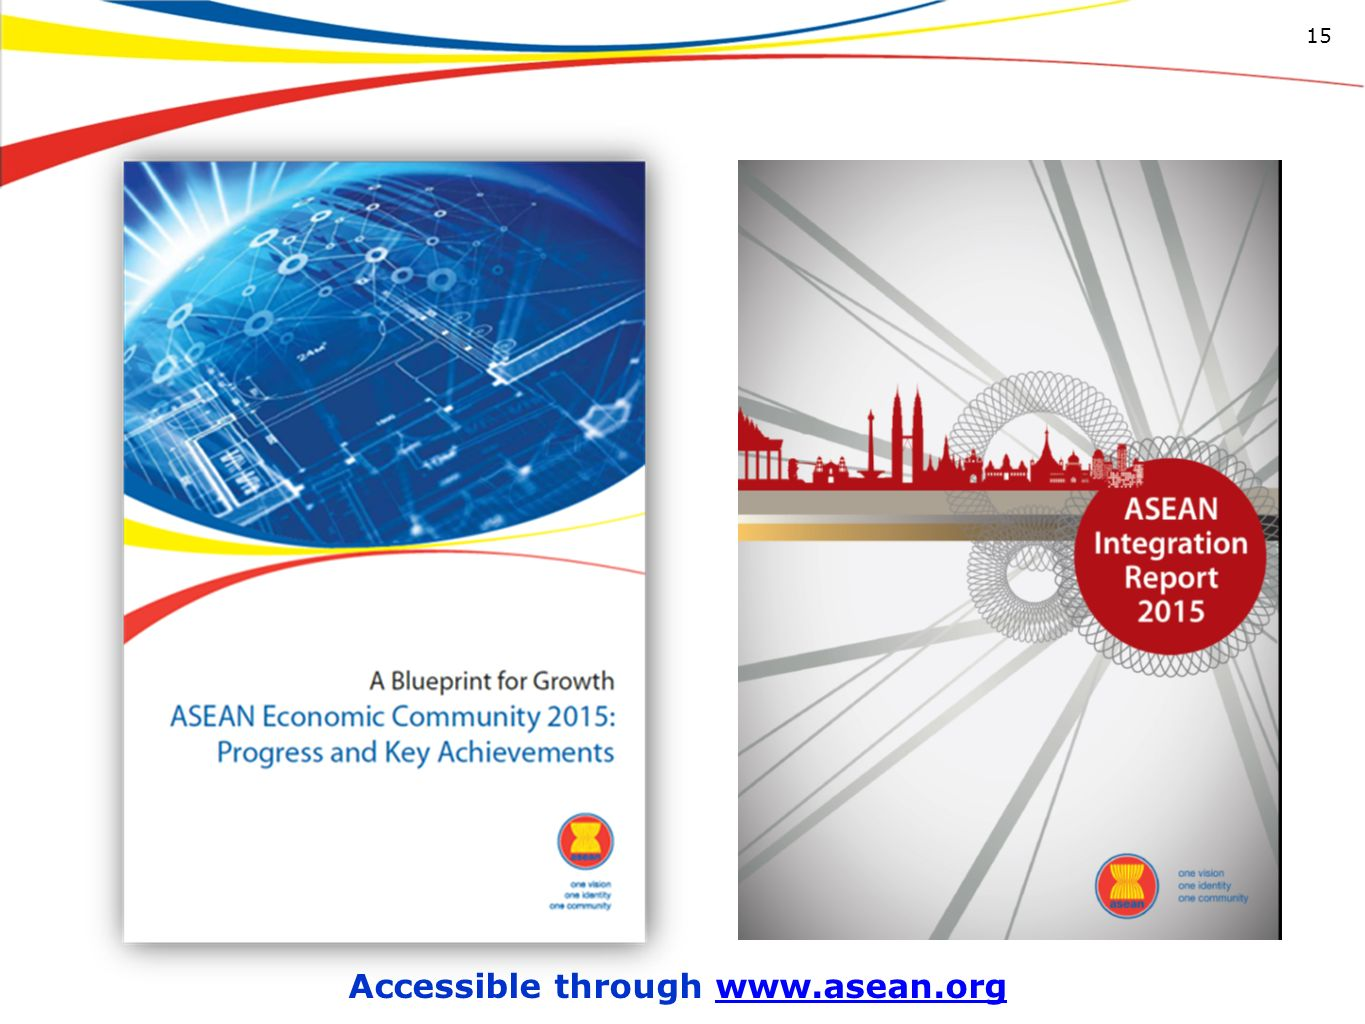 Asean economic community ppt video online download accessible through asean malvernweather Image collections